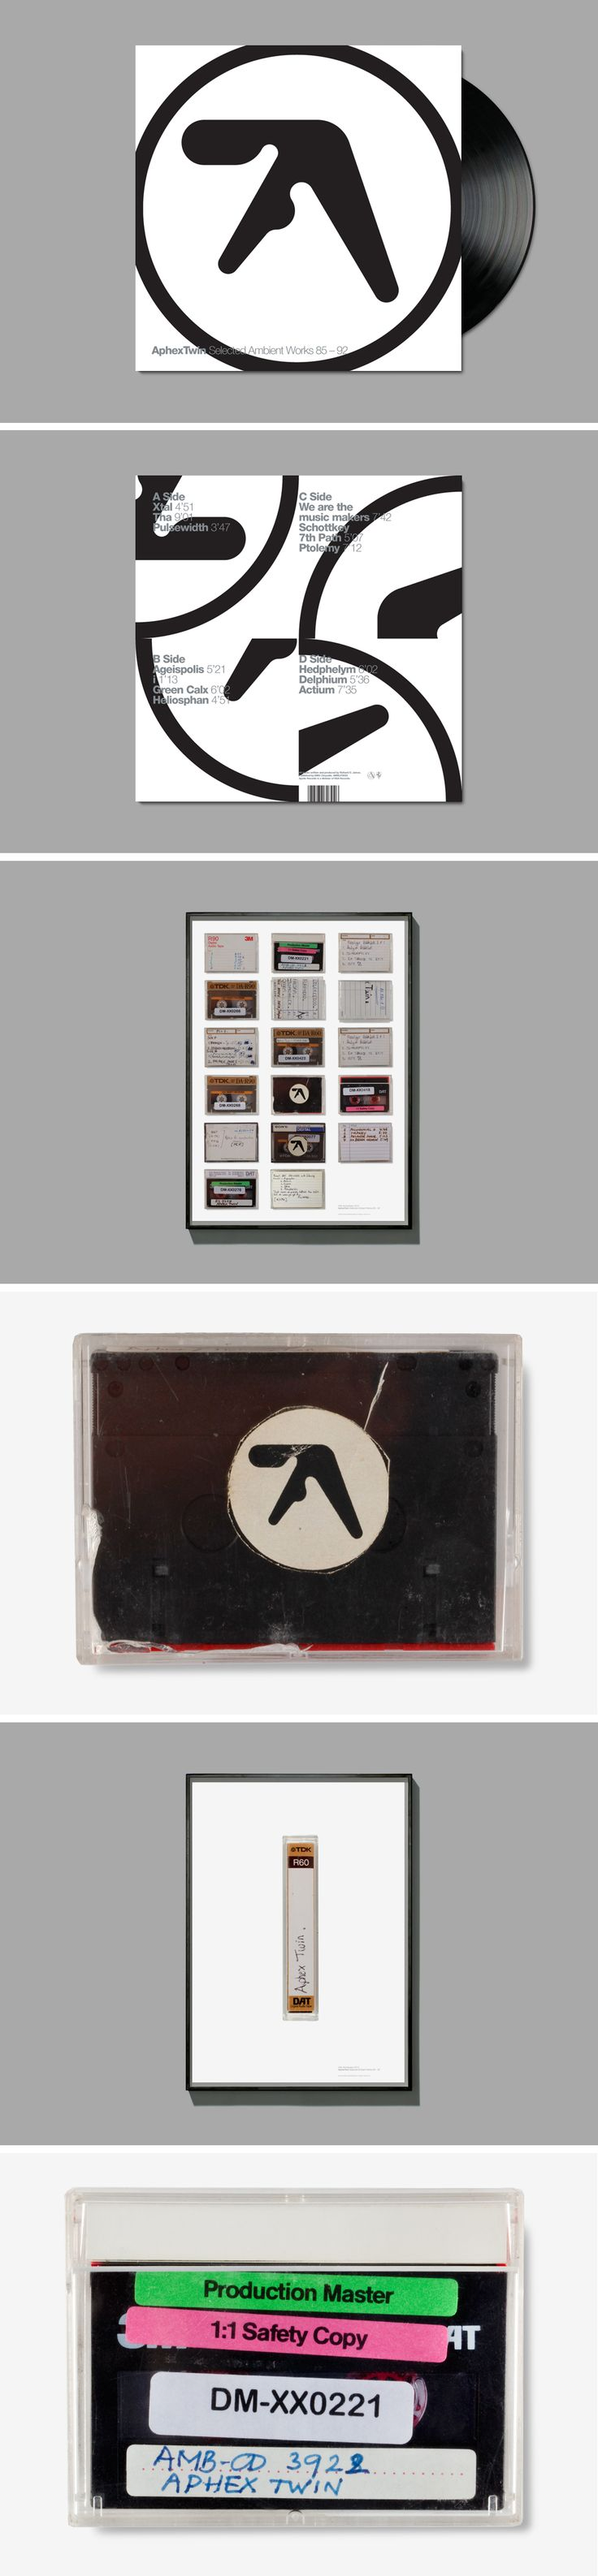 Selected Vol 2 in 99 was really the first time I noticed graphic design.  Format – LP re-work Posters  Client – Apollo/R&S Records  Info – Original Design  Unknown   Photogra...